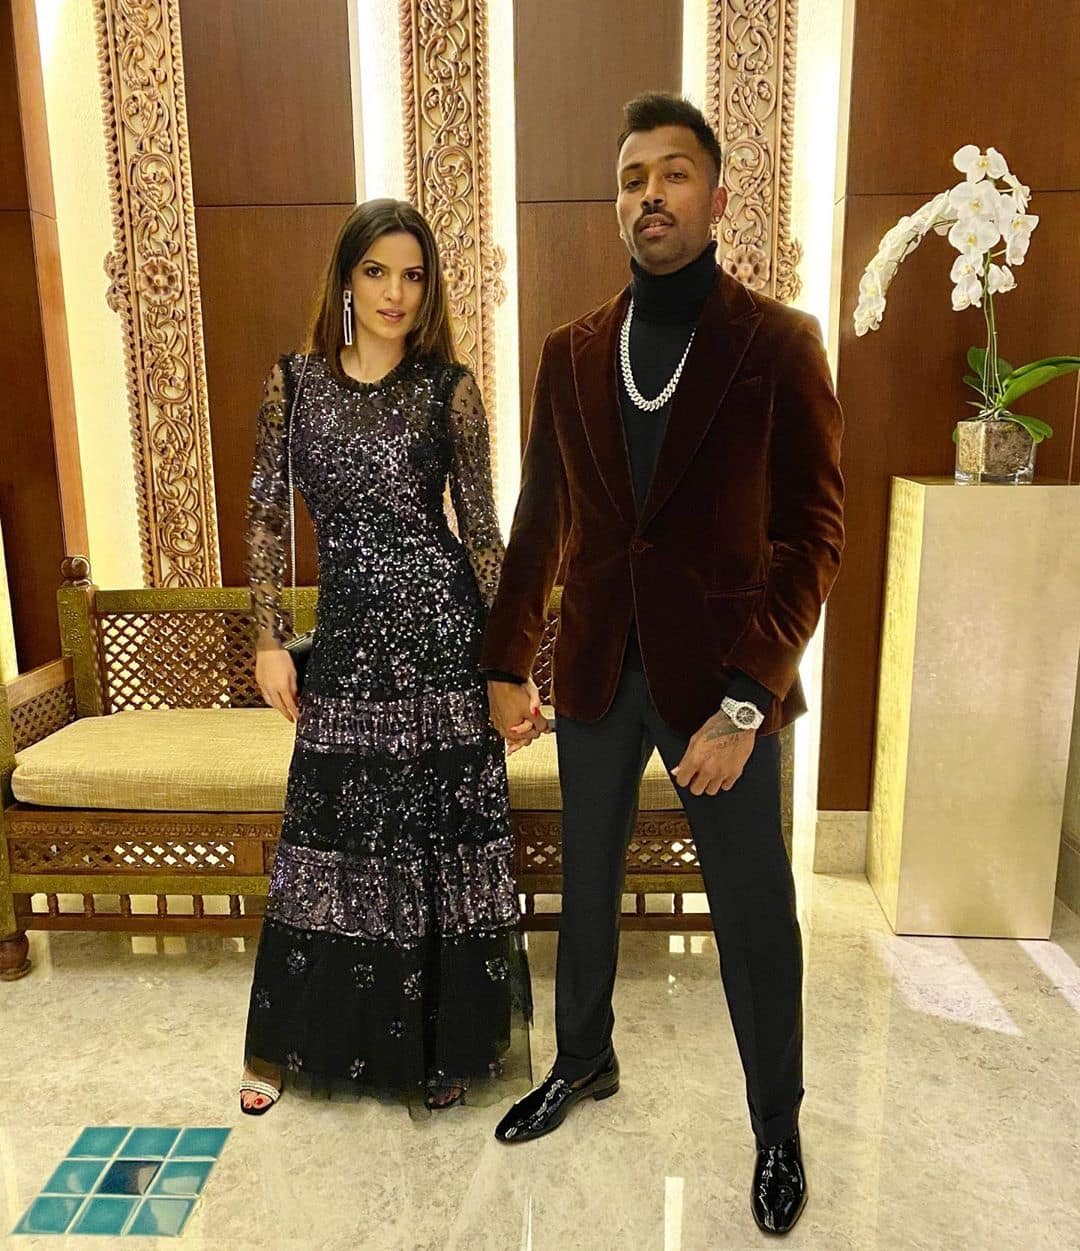 Has Hardik Pandya confirmed his relationship with Natasa Stancovic